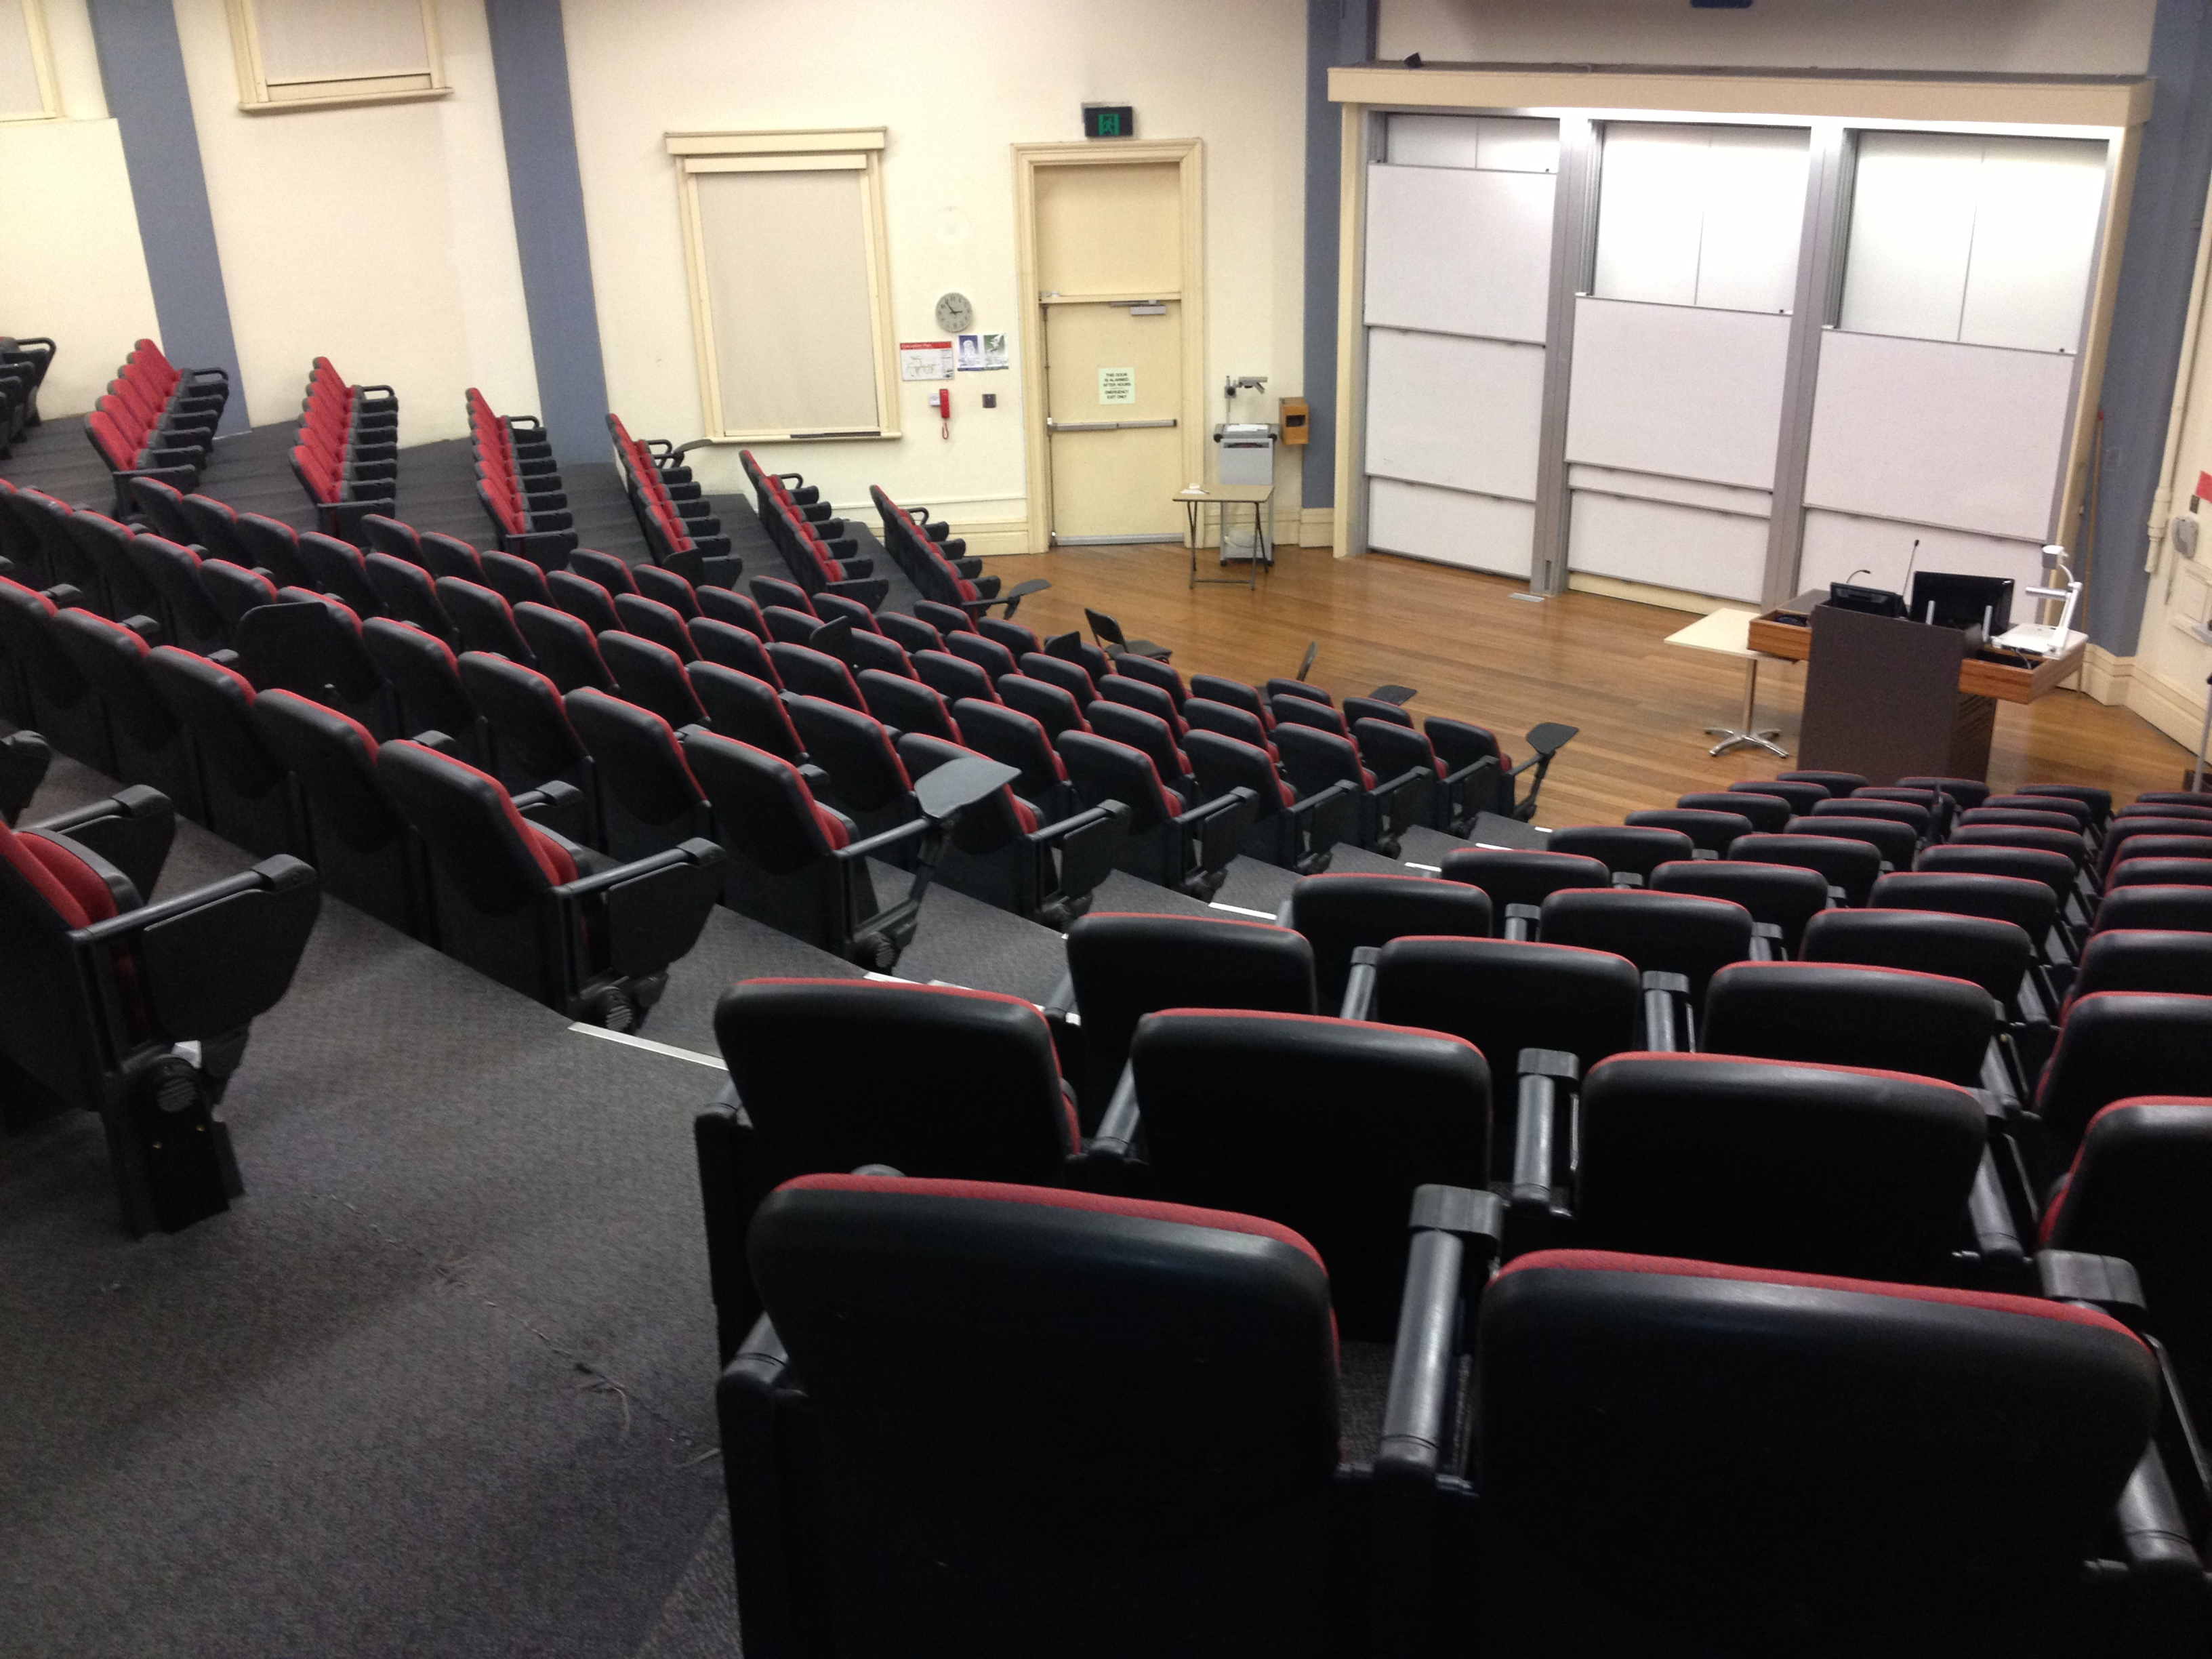 File:Old Geology Lecture Theatre, Sydney University.JPG ...